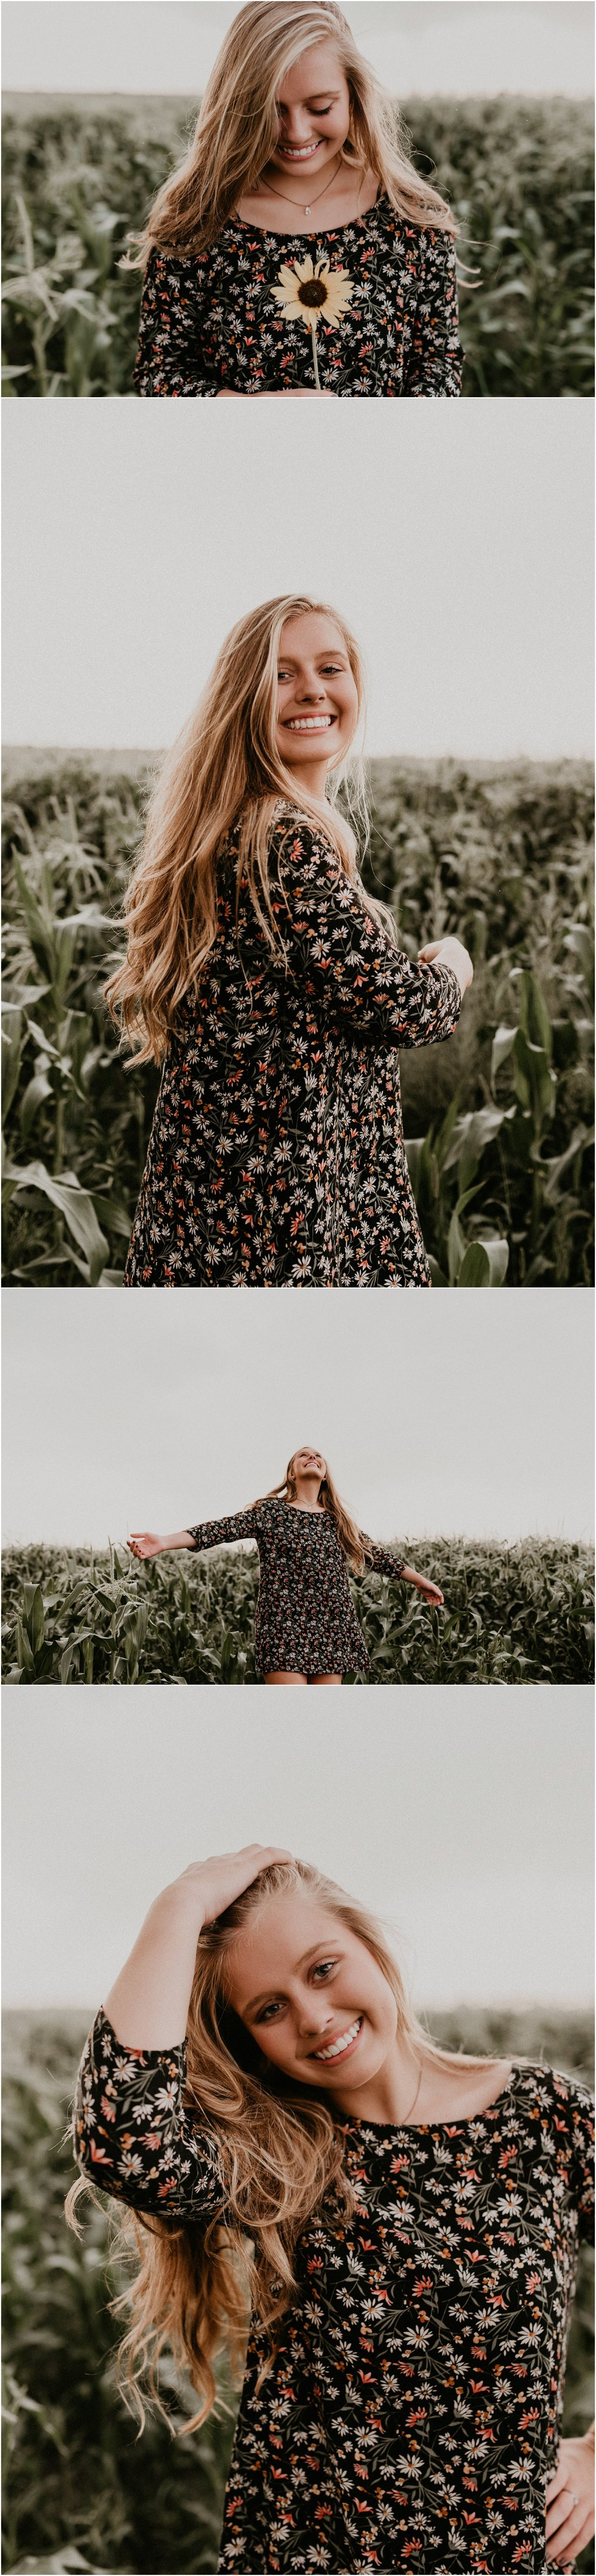 Boise Senior Photographer Idaho Summer Senior Pics Cornfield Linder Farms Floral Dress Flowers Makayla Madden Photography Laughter Dancing